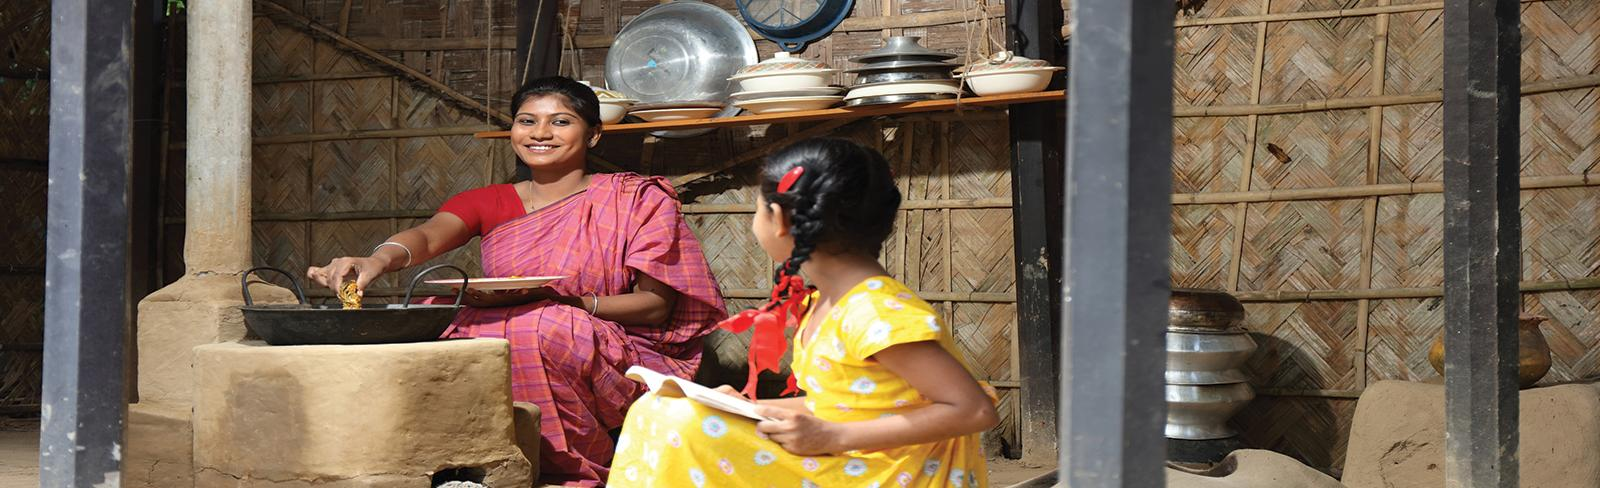 woman and child cooking at home